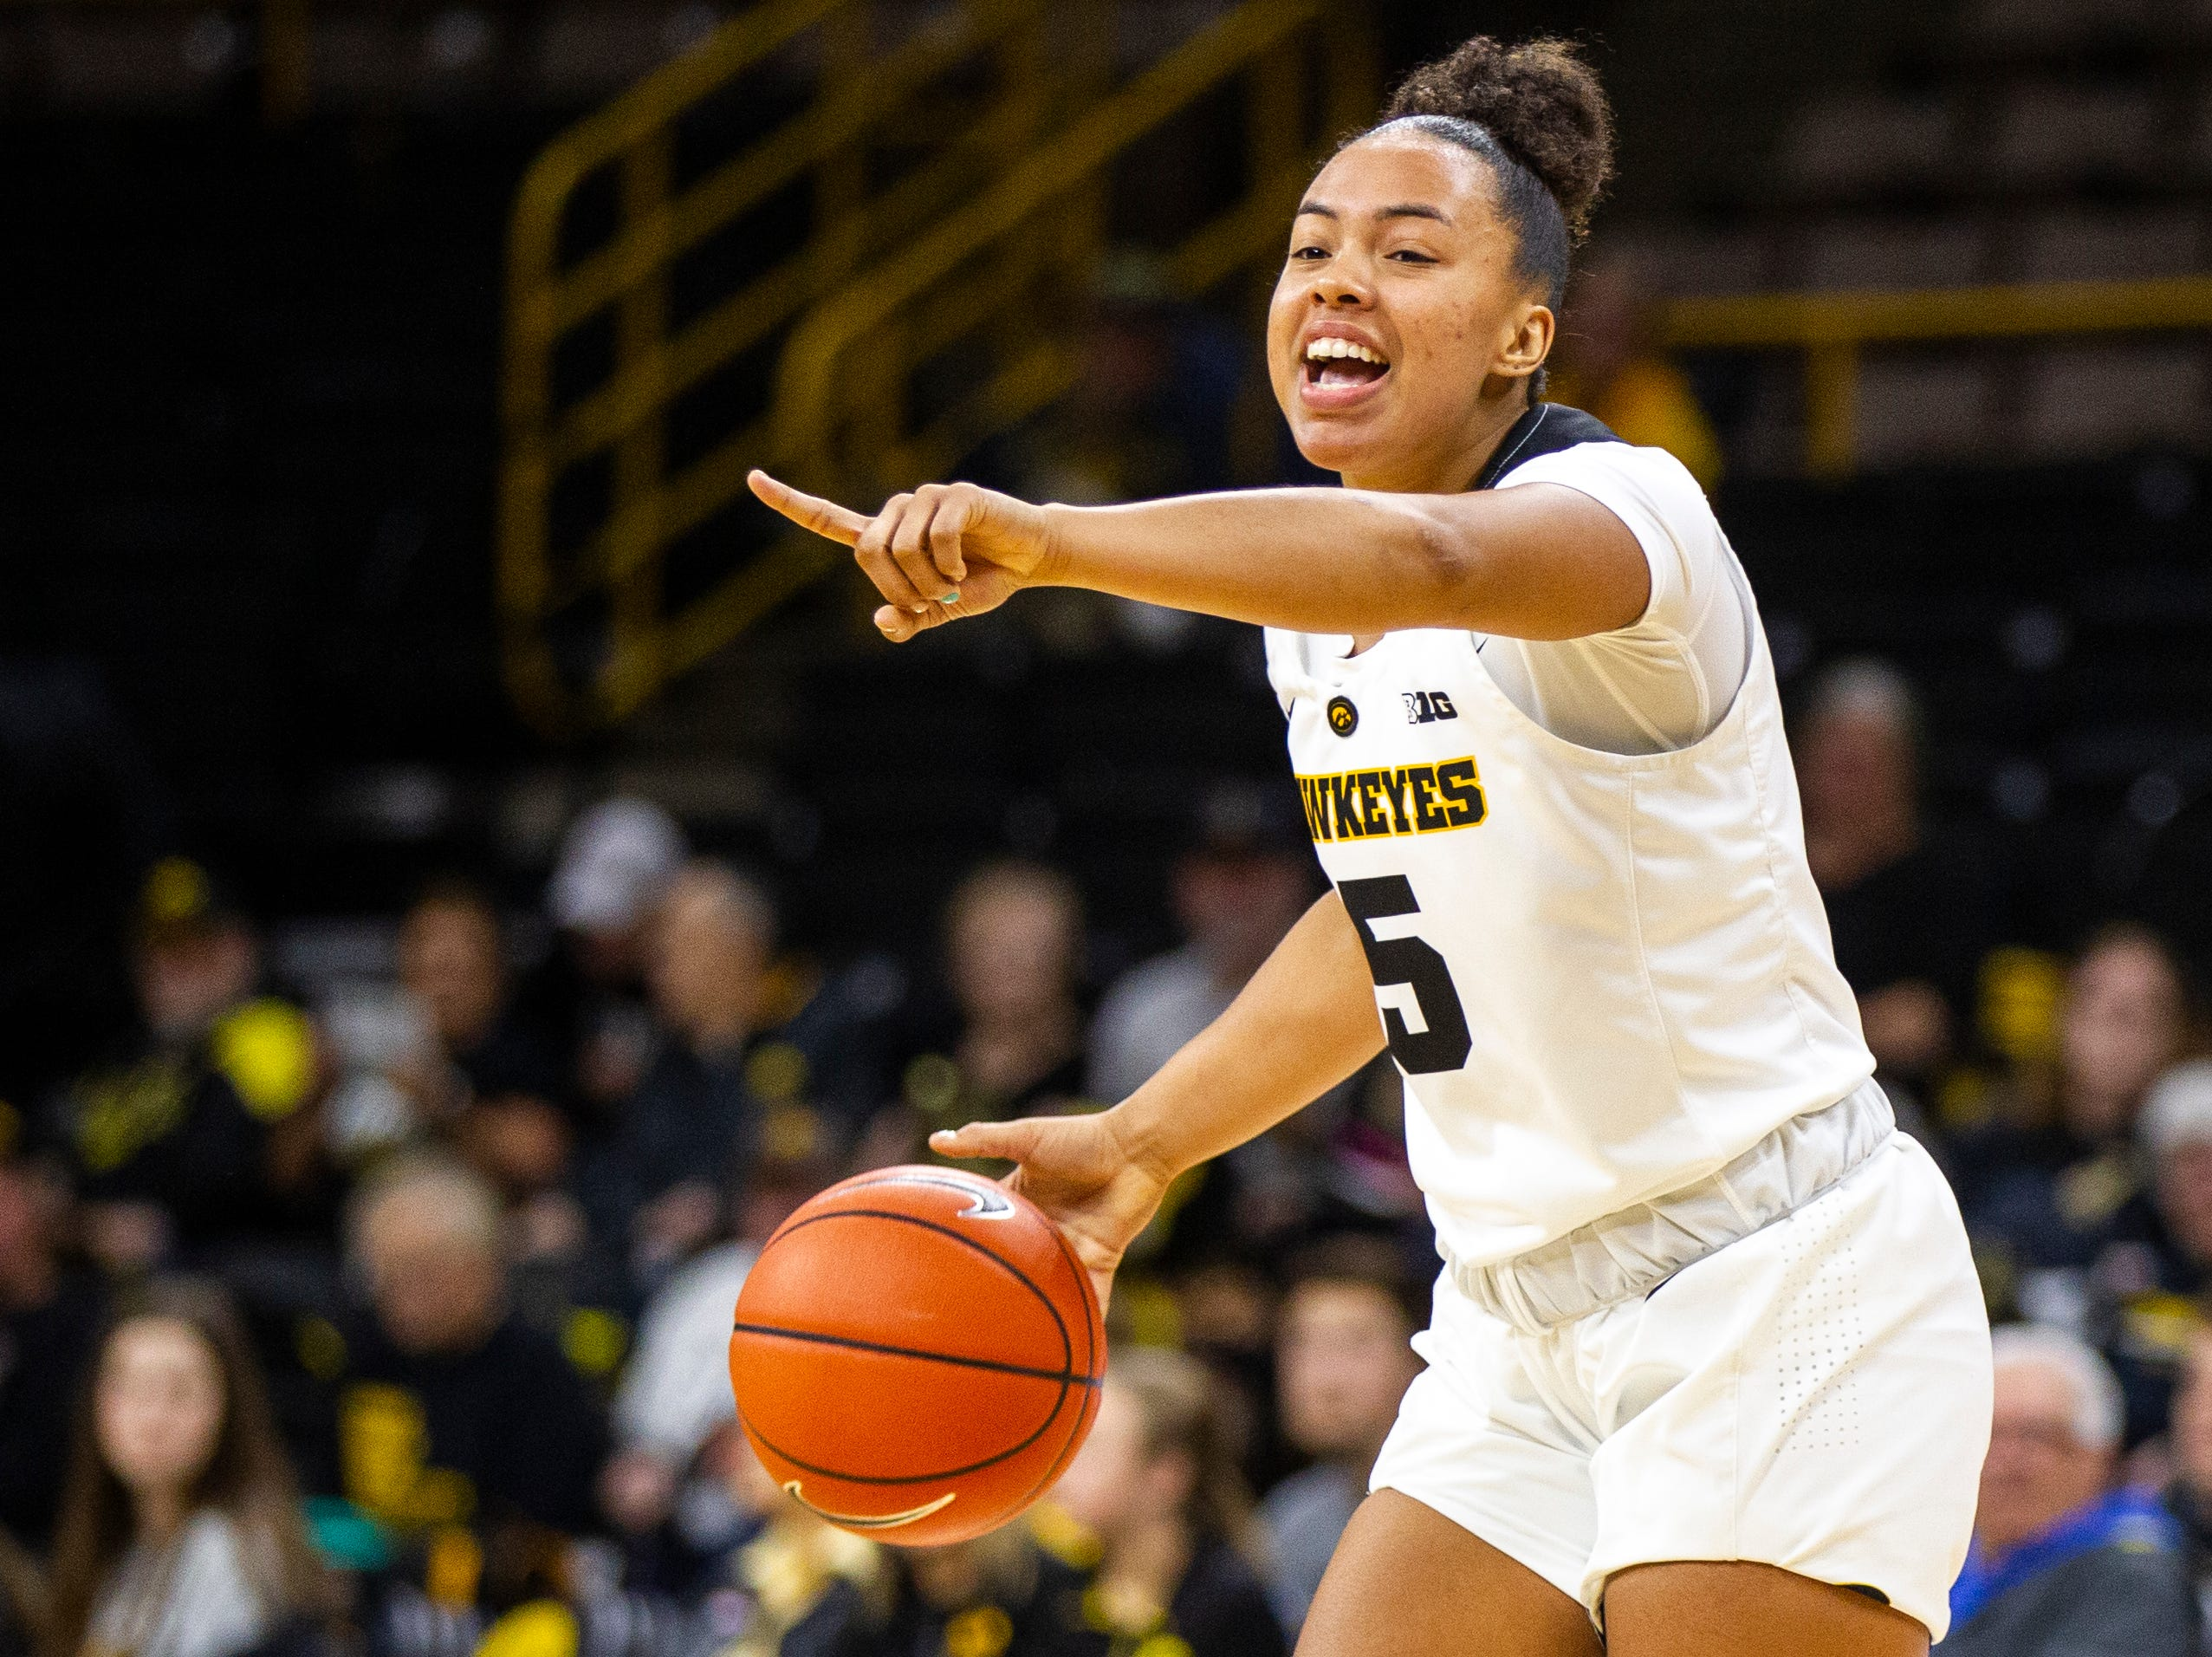 Iowa guard Alexis Sevillian (5) calls out to teammates during a women's basketball exhibition basketball game on Tuesday, Nov. 6, 2018, at Carver-Hawkeye Arena in Iowa City.